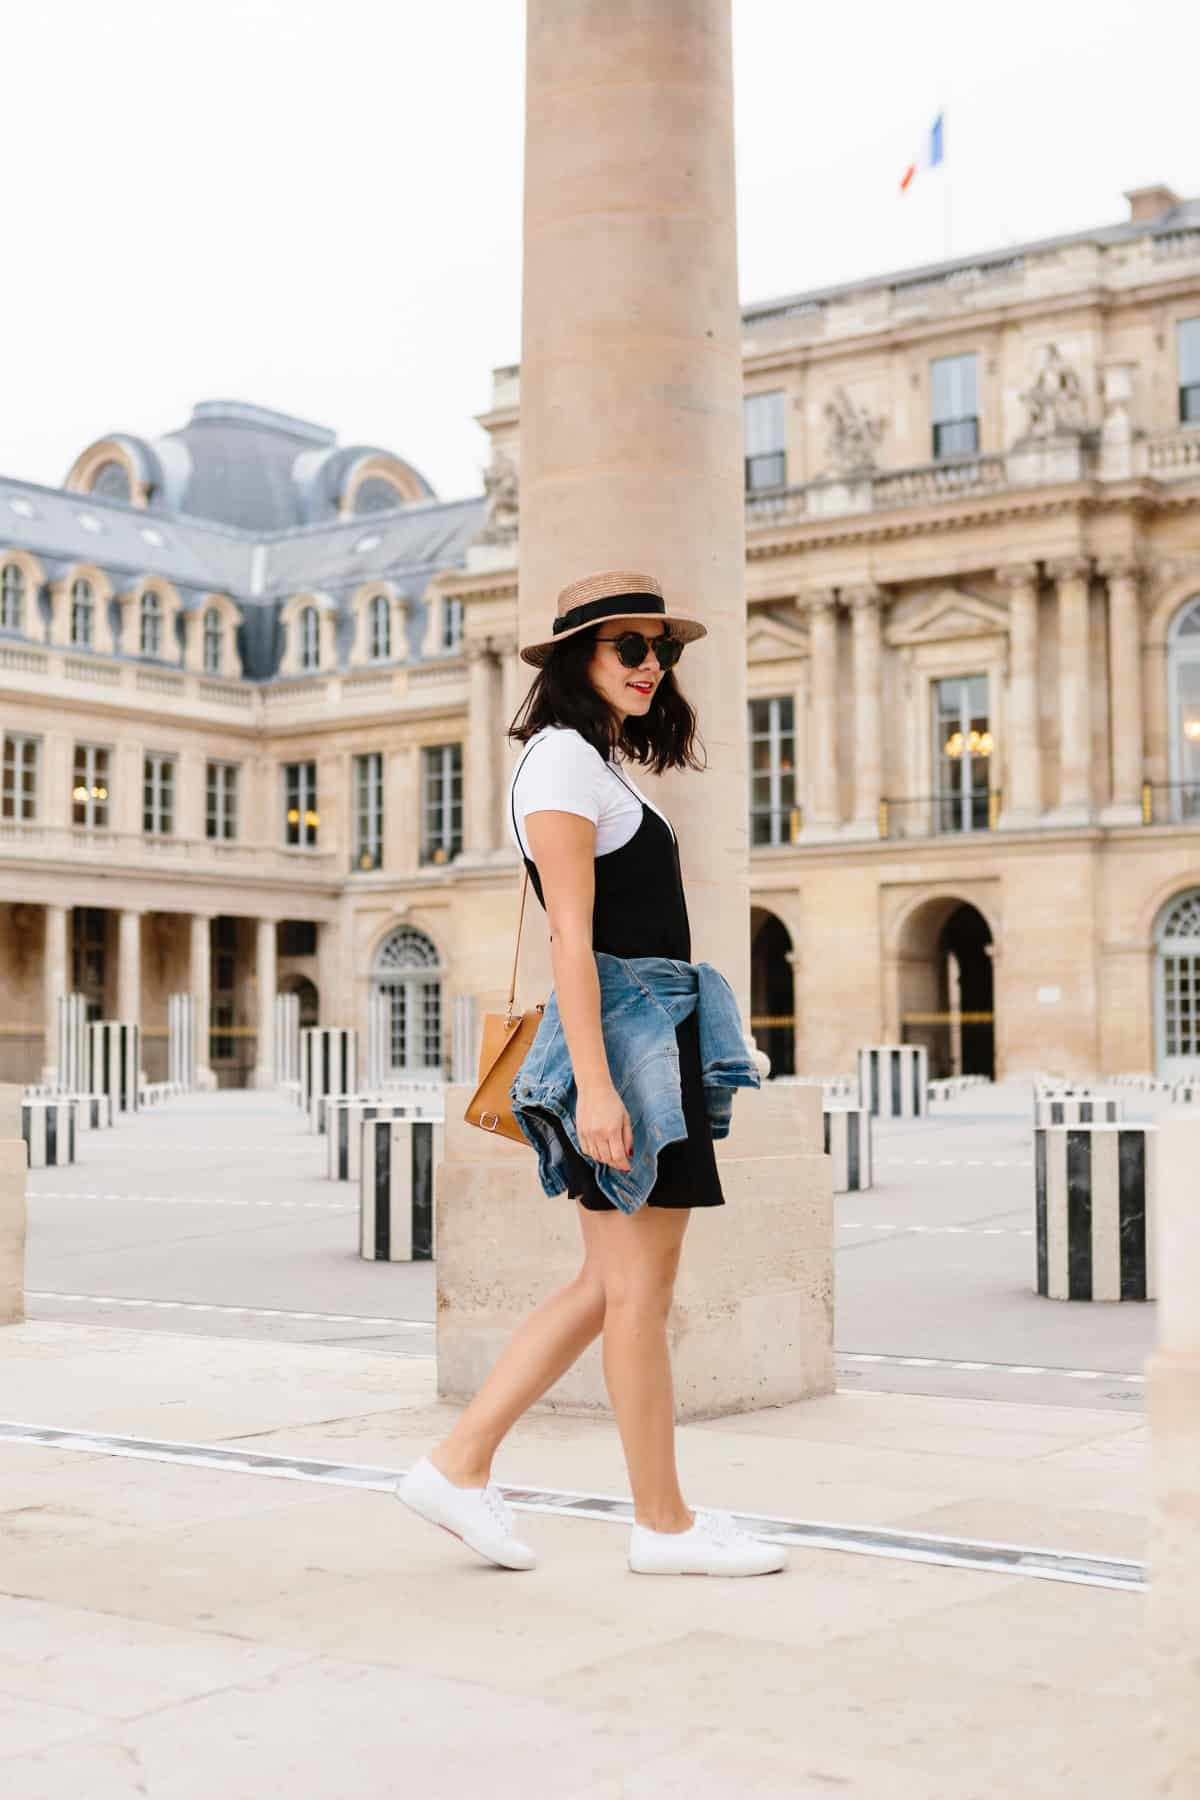 Paris cafe photos of Paris, paris outfit ideas for traveling - My Style Vita @mystylevita